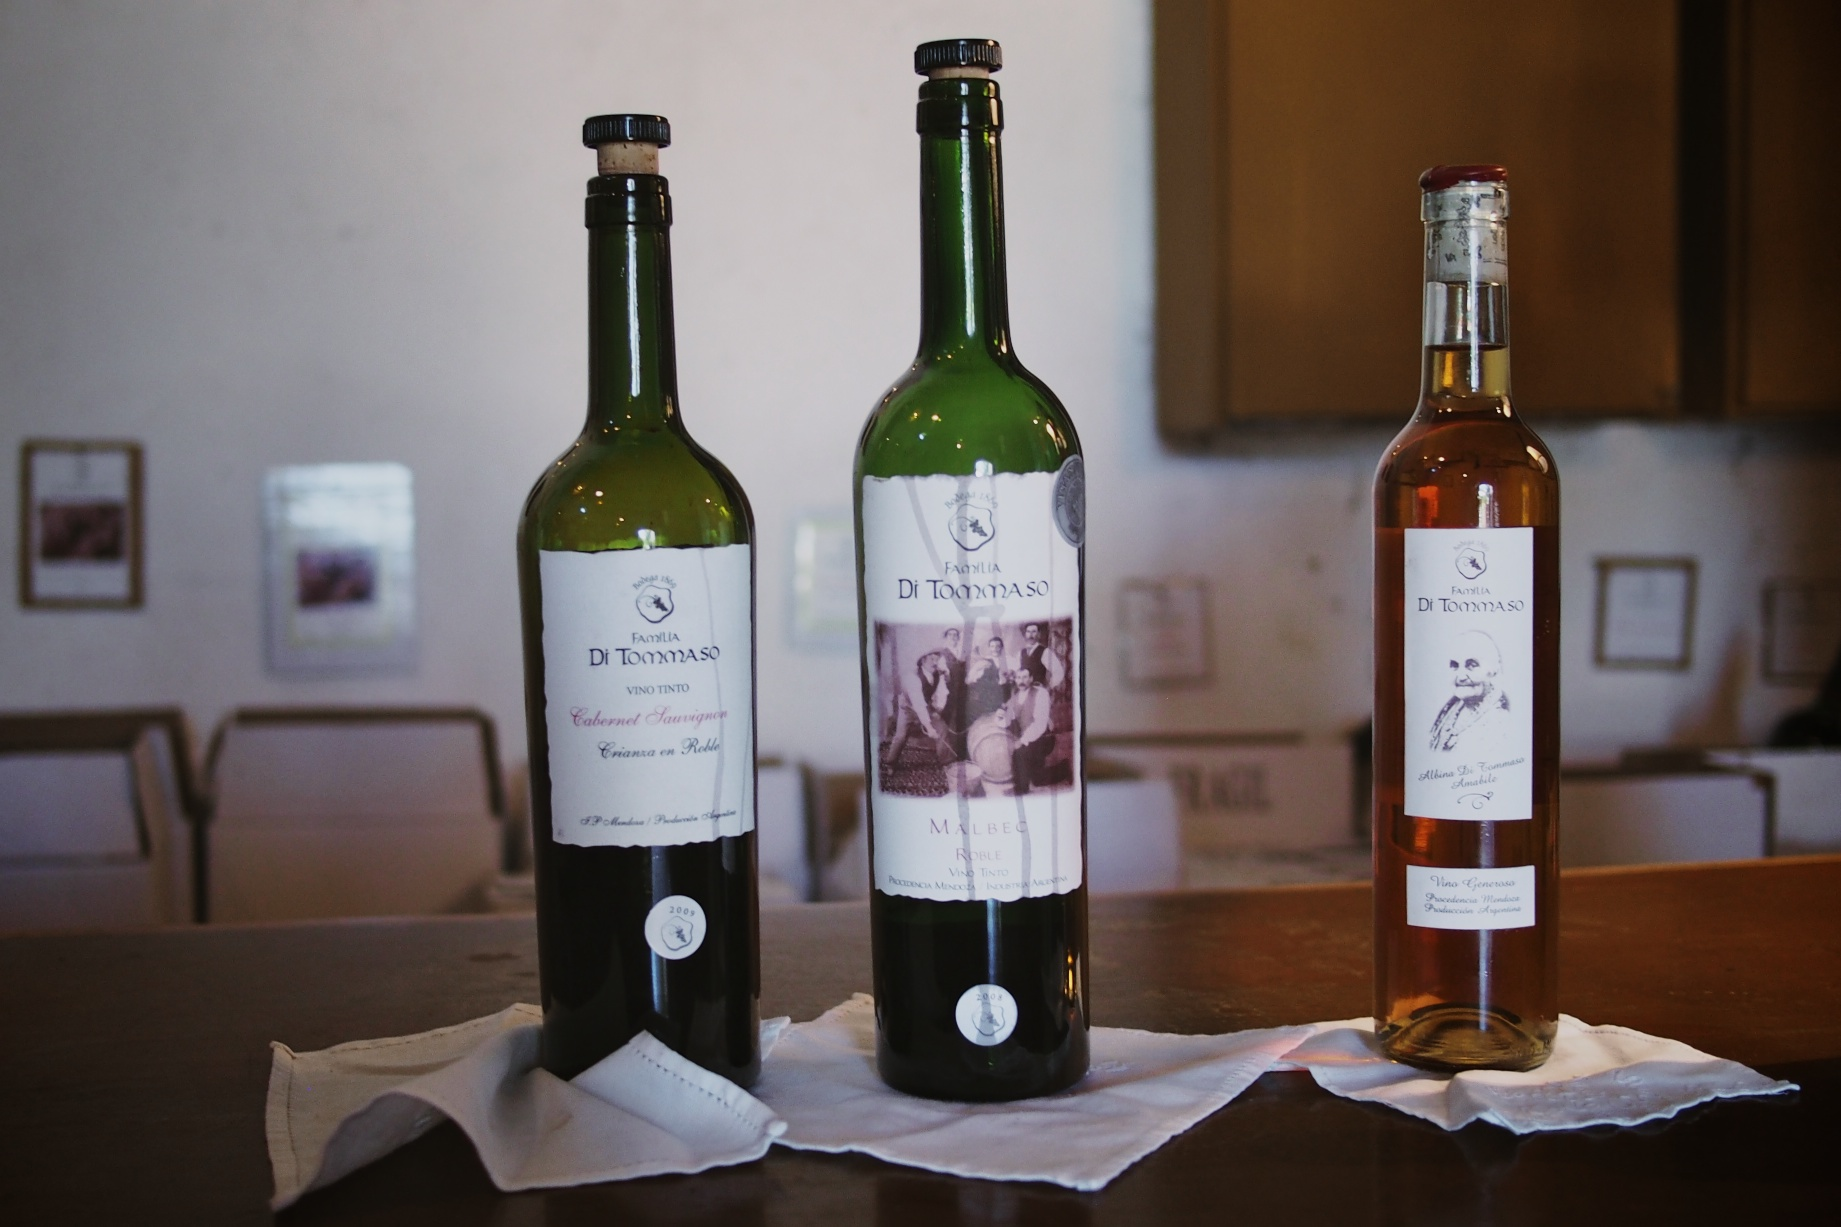 Three of the wines we sampled